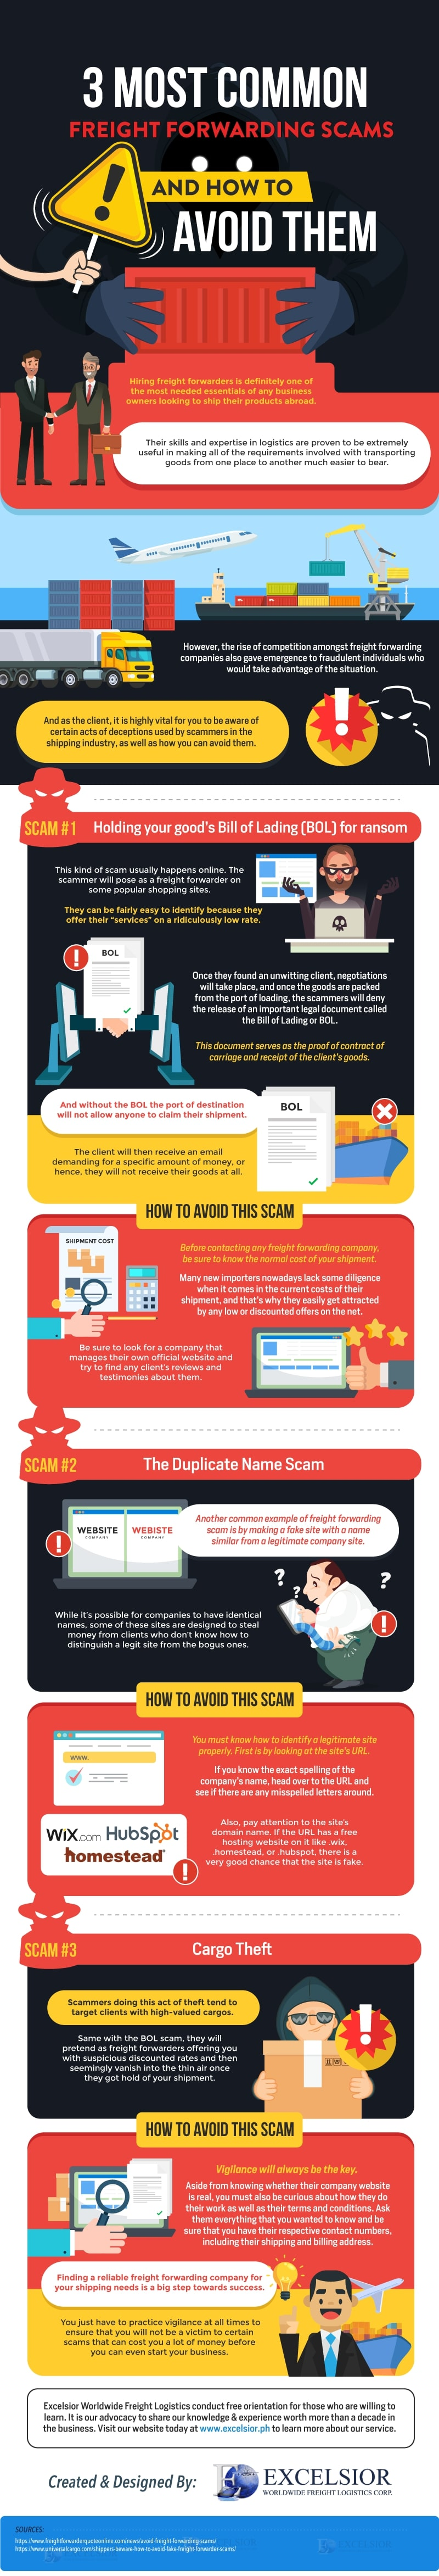 3 Most Common Freight Forwarding Scams And How To Avoid Them